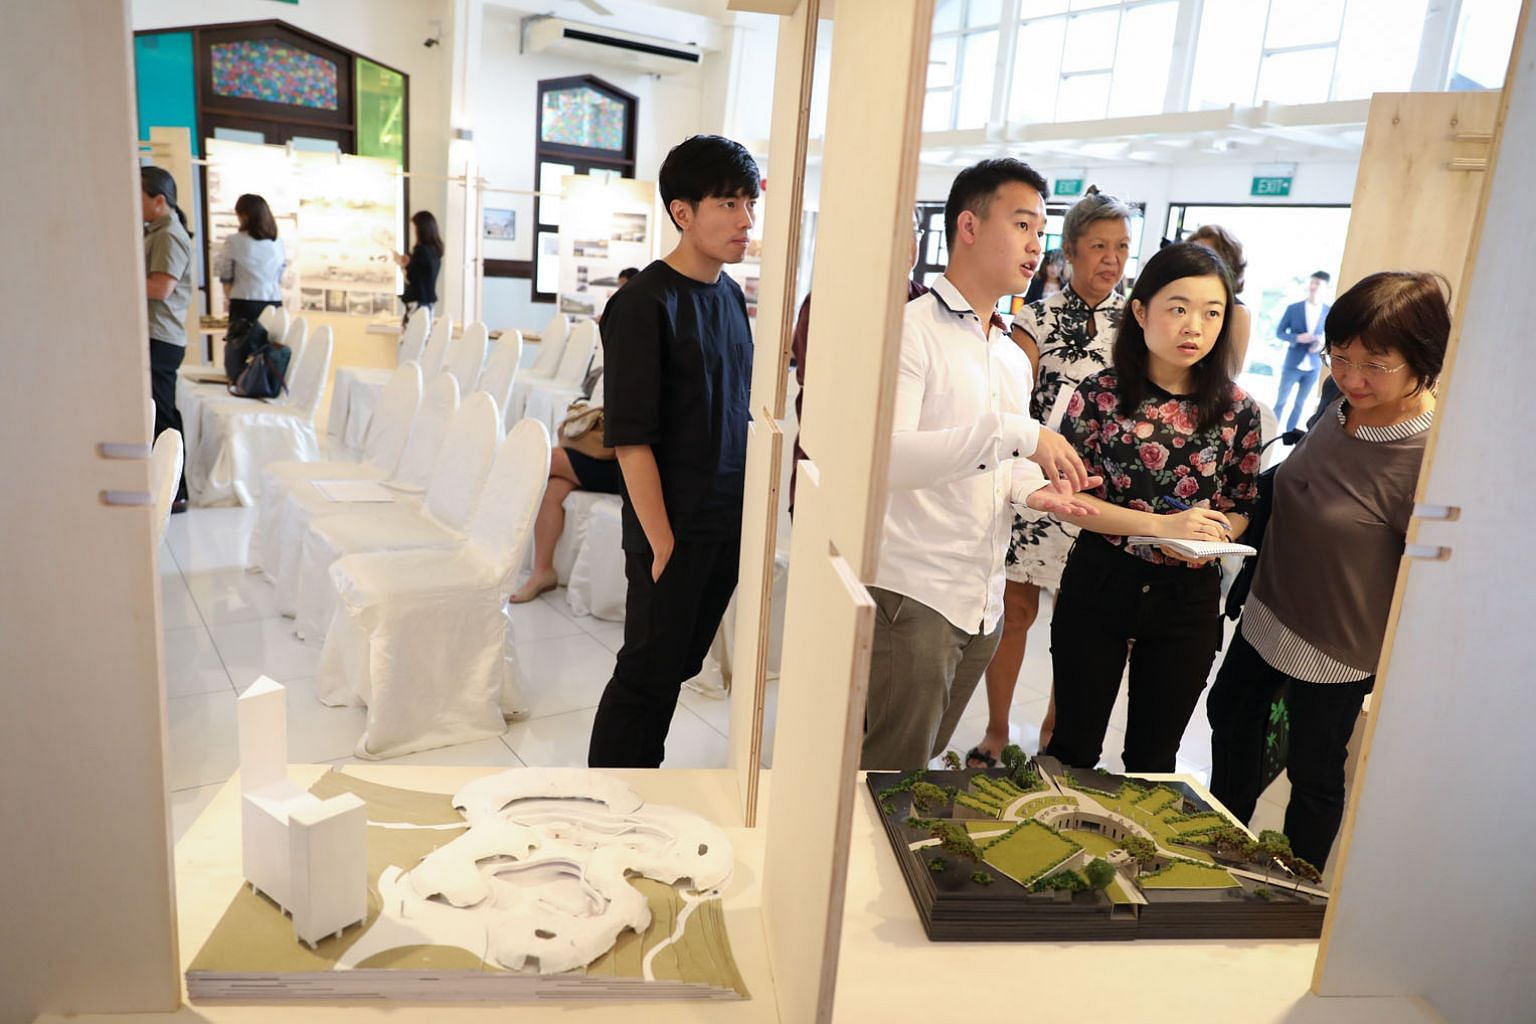 National University of Singapore architecture undergraduate John Kevin Chandra (in white), explaining his design that won the first prize in the Land For The Living - Space For The Dead design challenge yesterday. His design featured a proposed colum